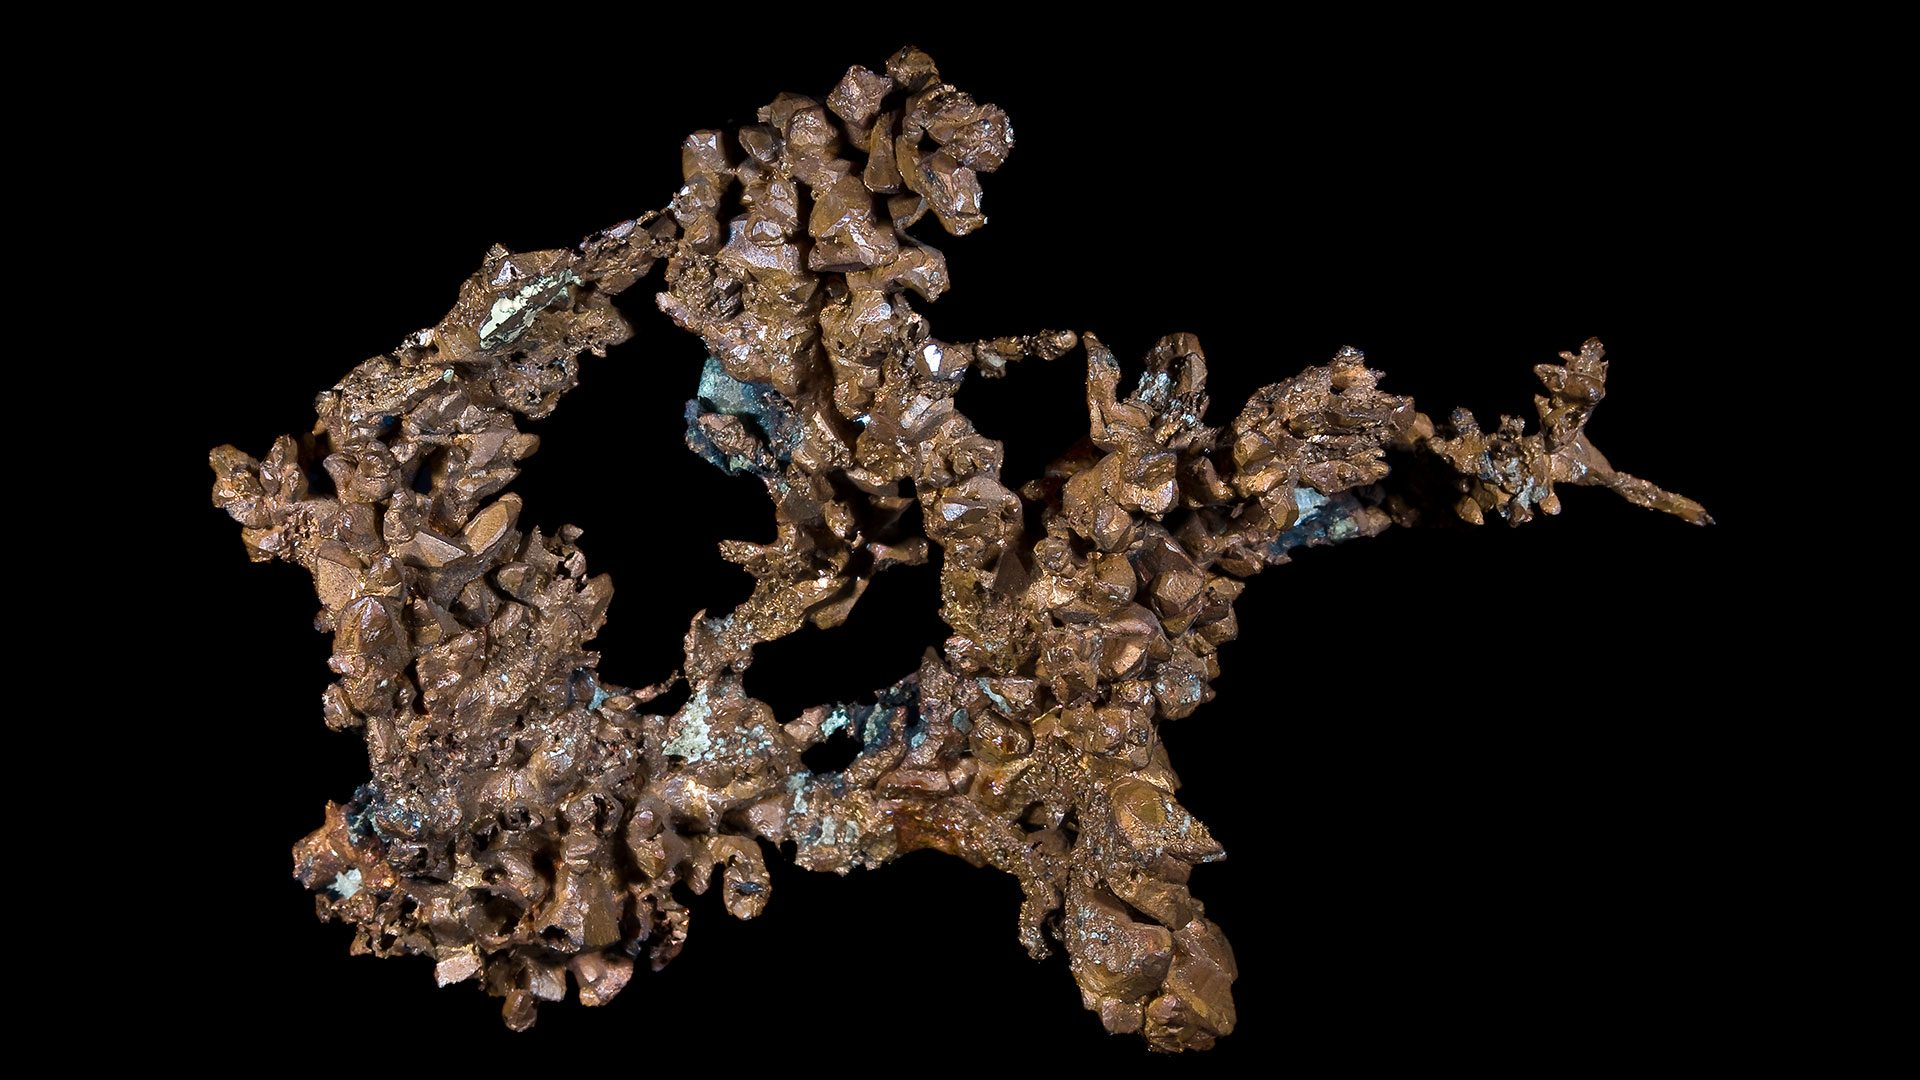 Copper Crystal Specimen - Original Photograph by Didier Descouens